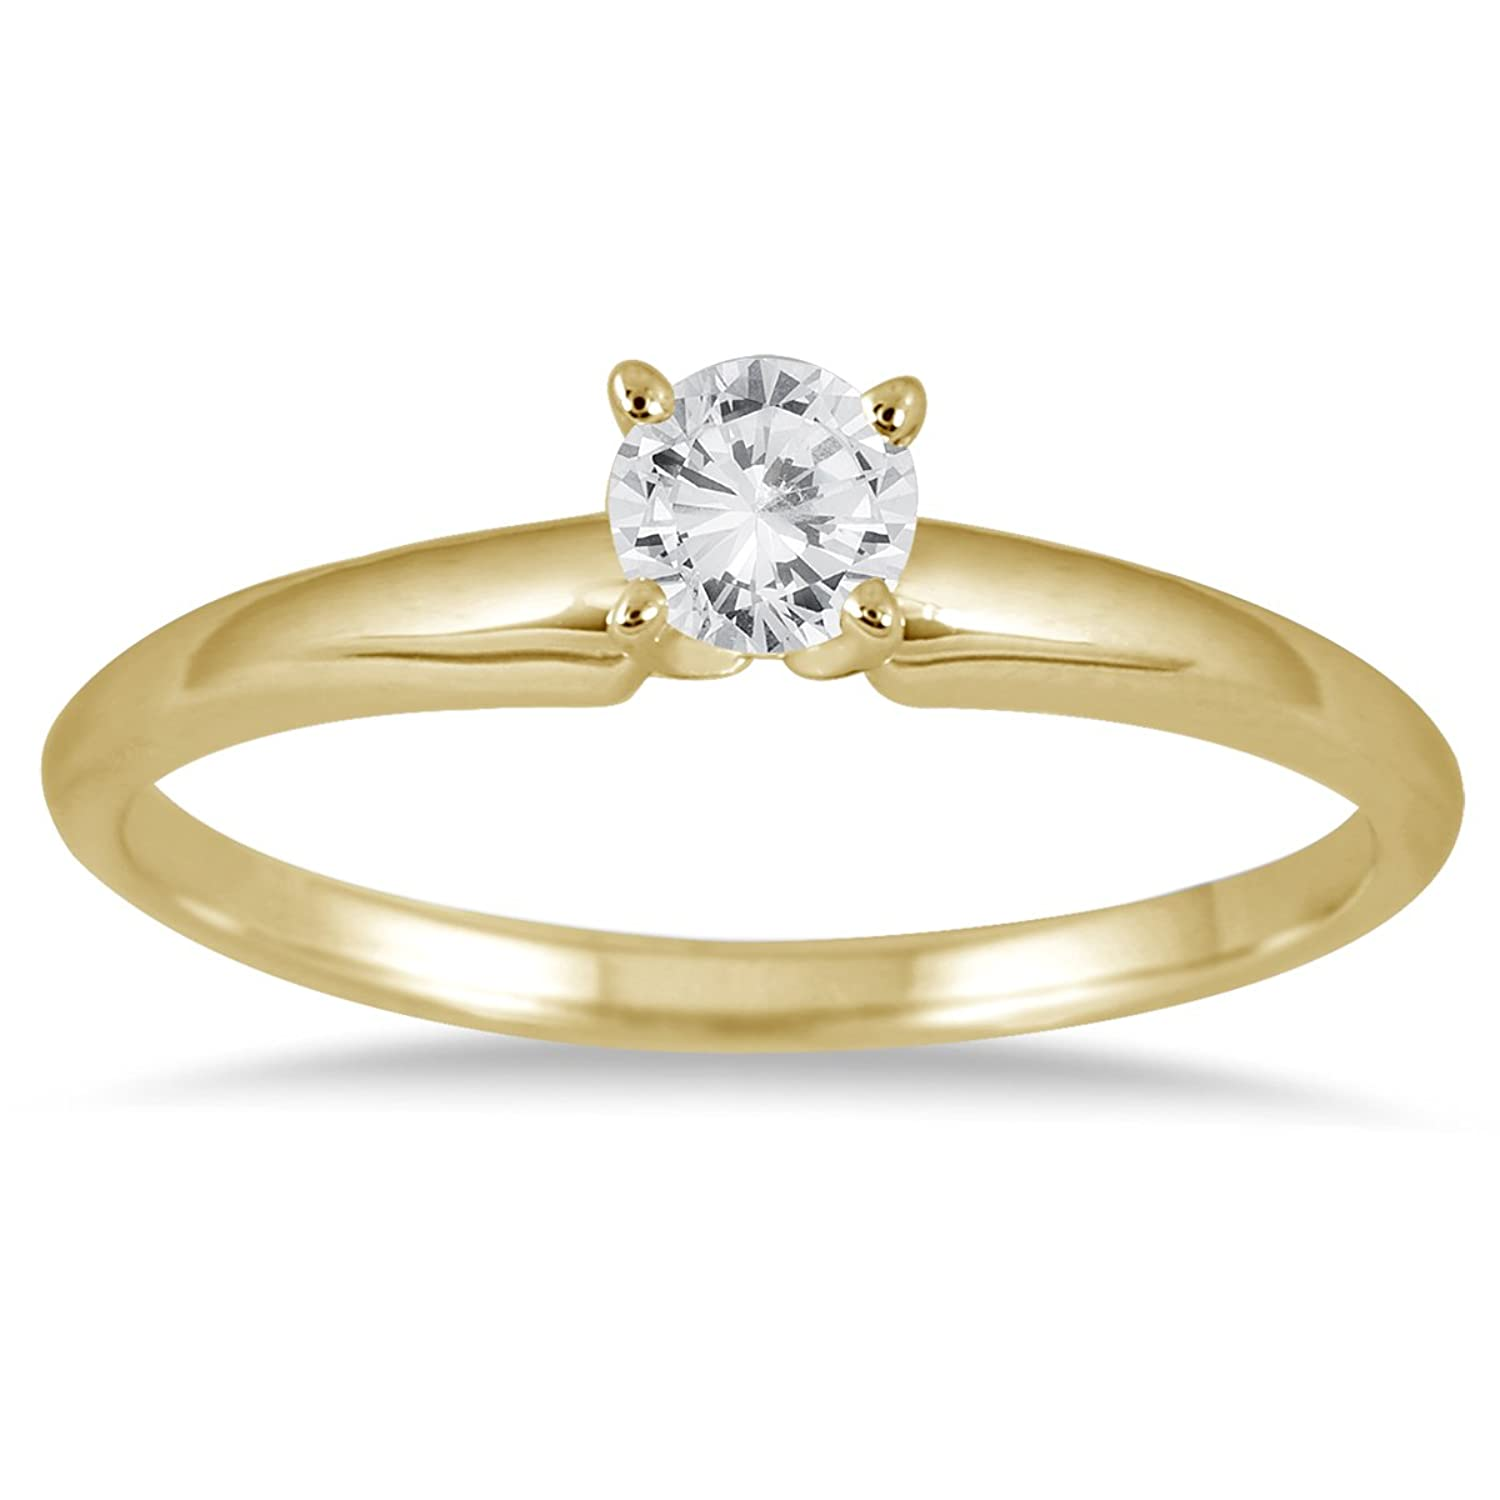 Amazon 1 10 Carat Round Diamond Solitaire Ring in 14K Yellow